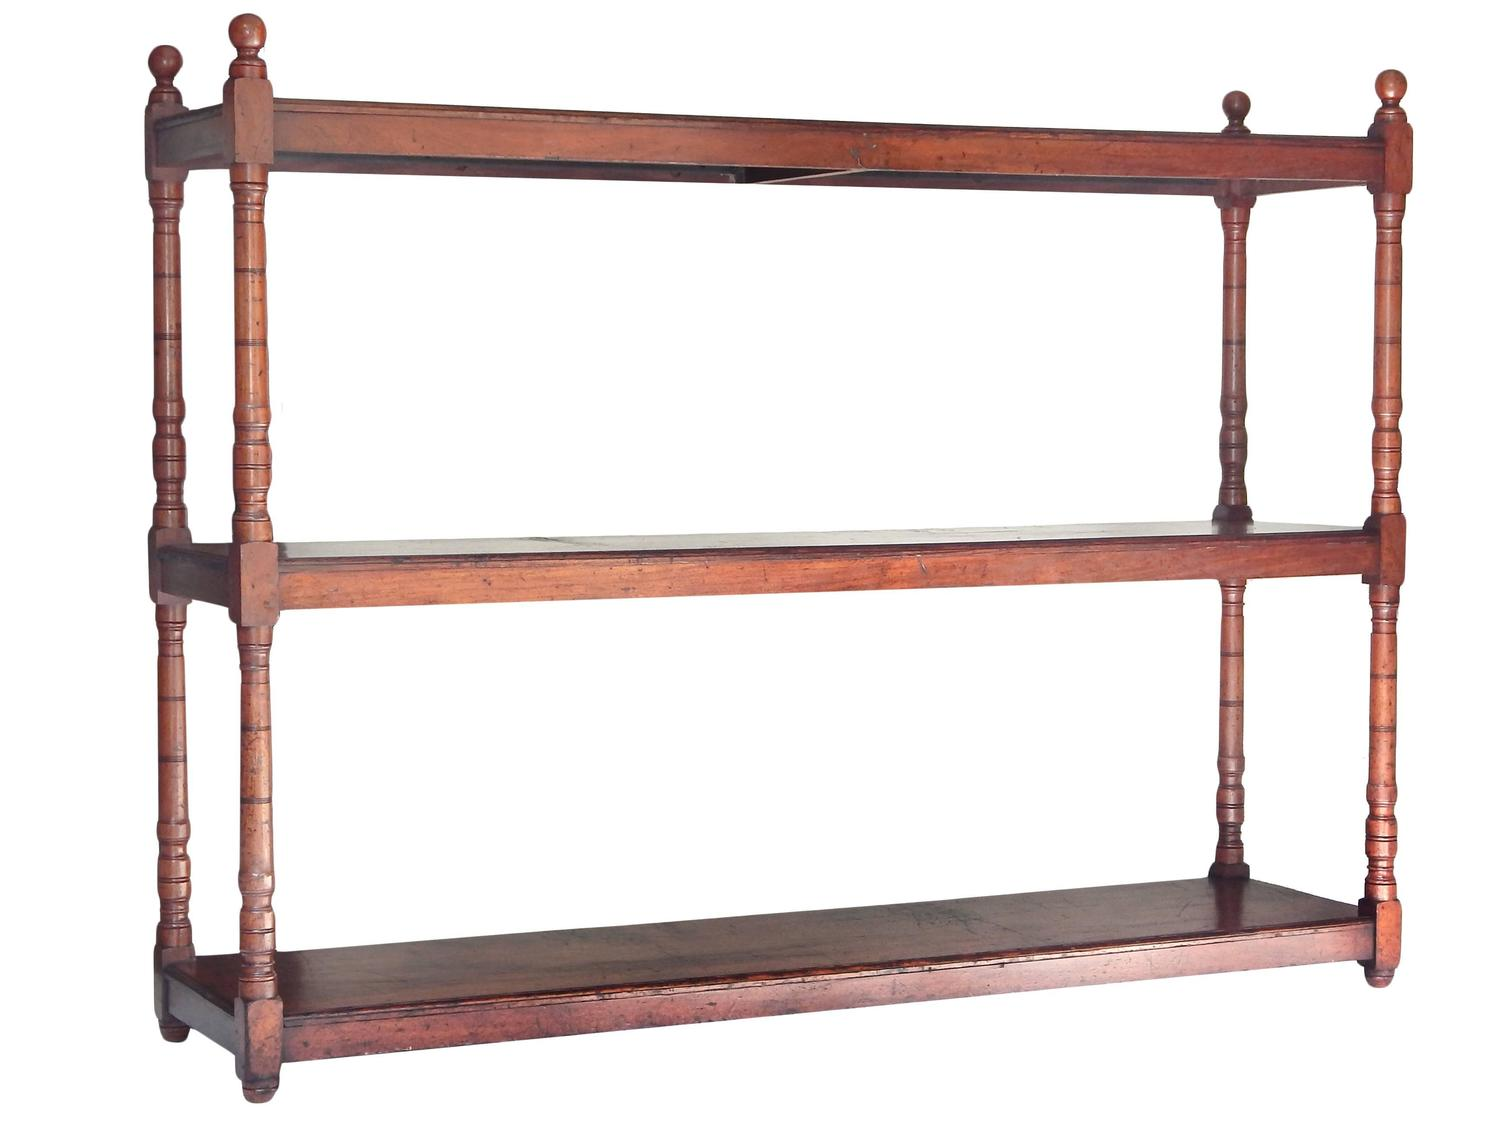 19th century english etagere at 1stdibs. Black Bedroom Furniture Sets. Home Design Ideas